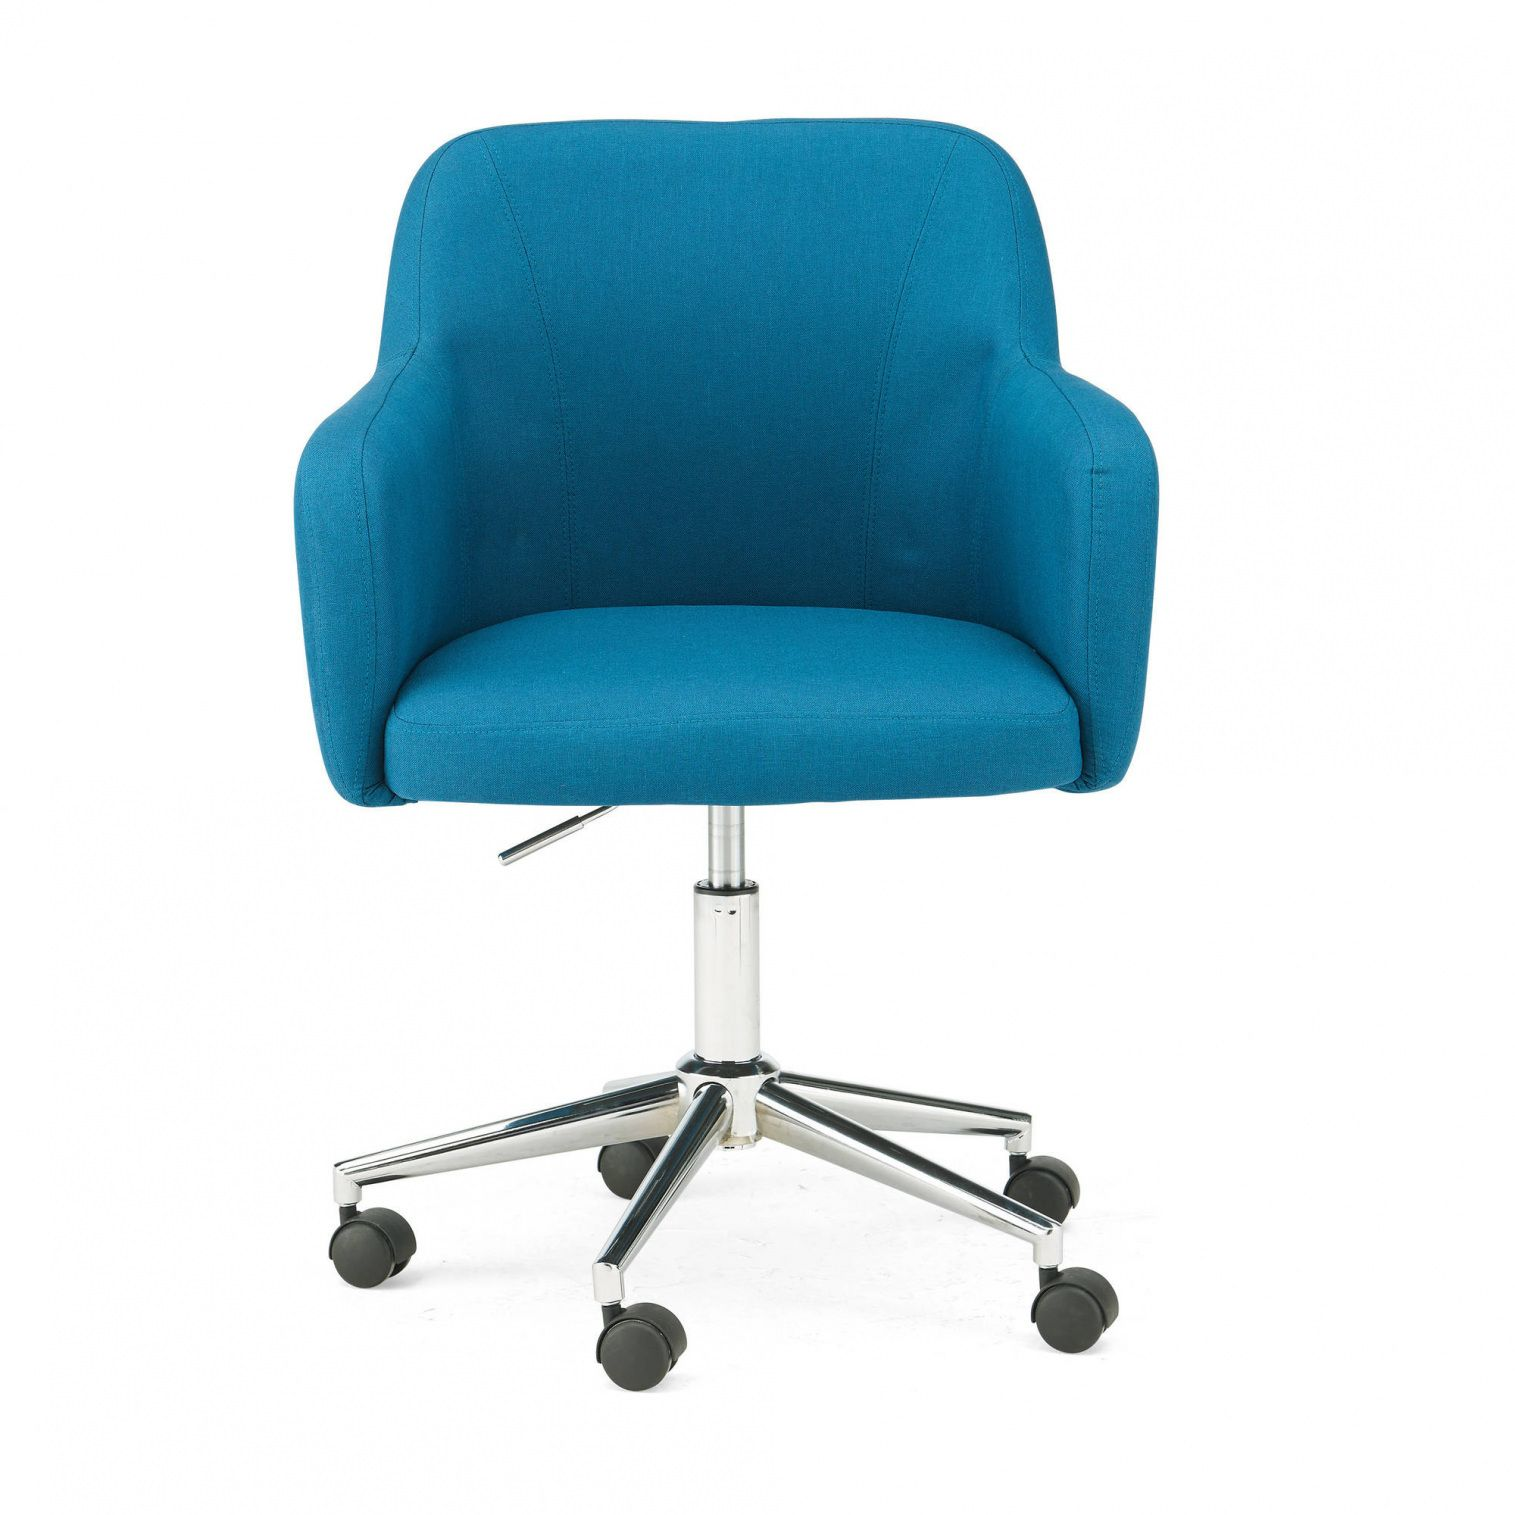 Office Chair Walmart - ashley Furniture Home Office Check more at ...